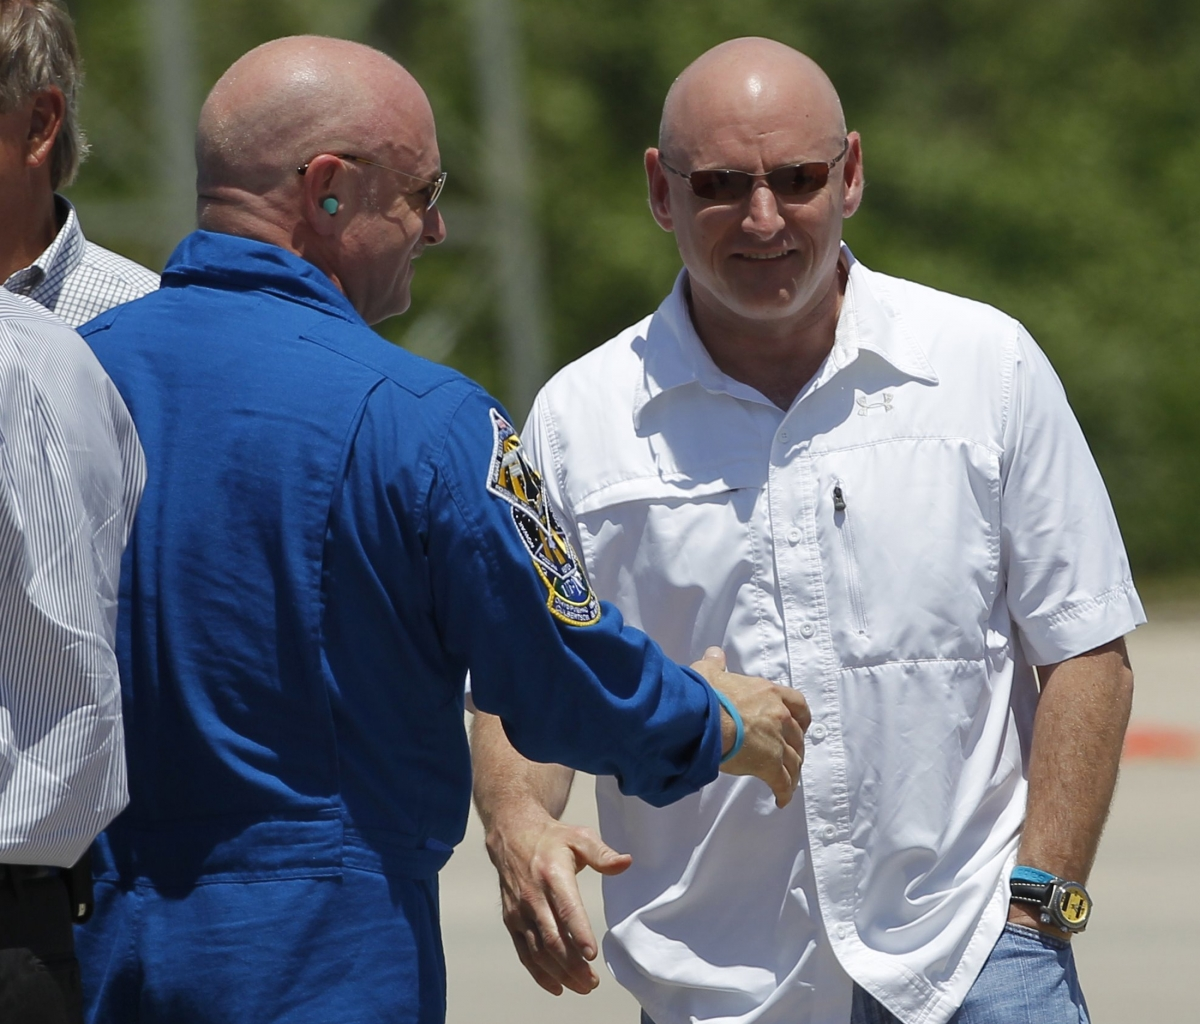 Mark and Scott Kelly astronauts